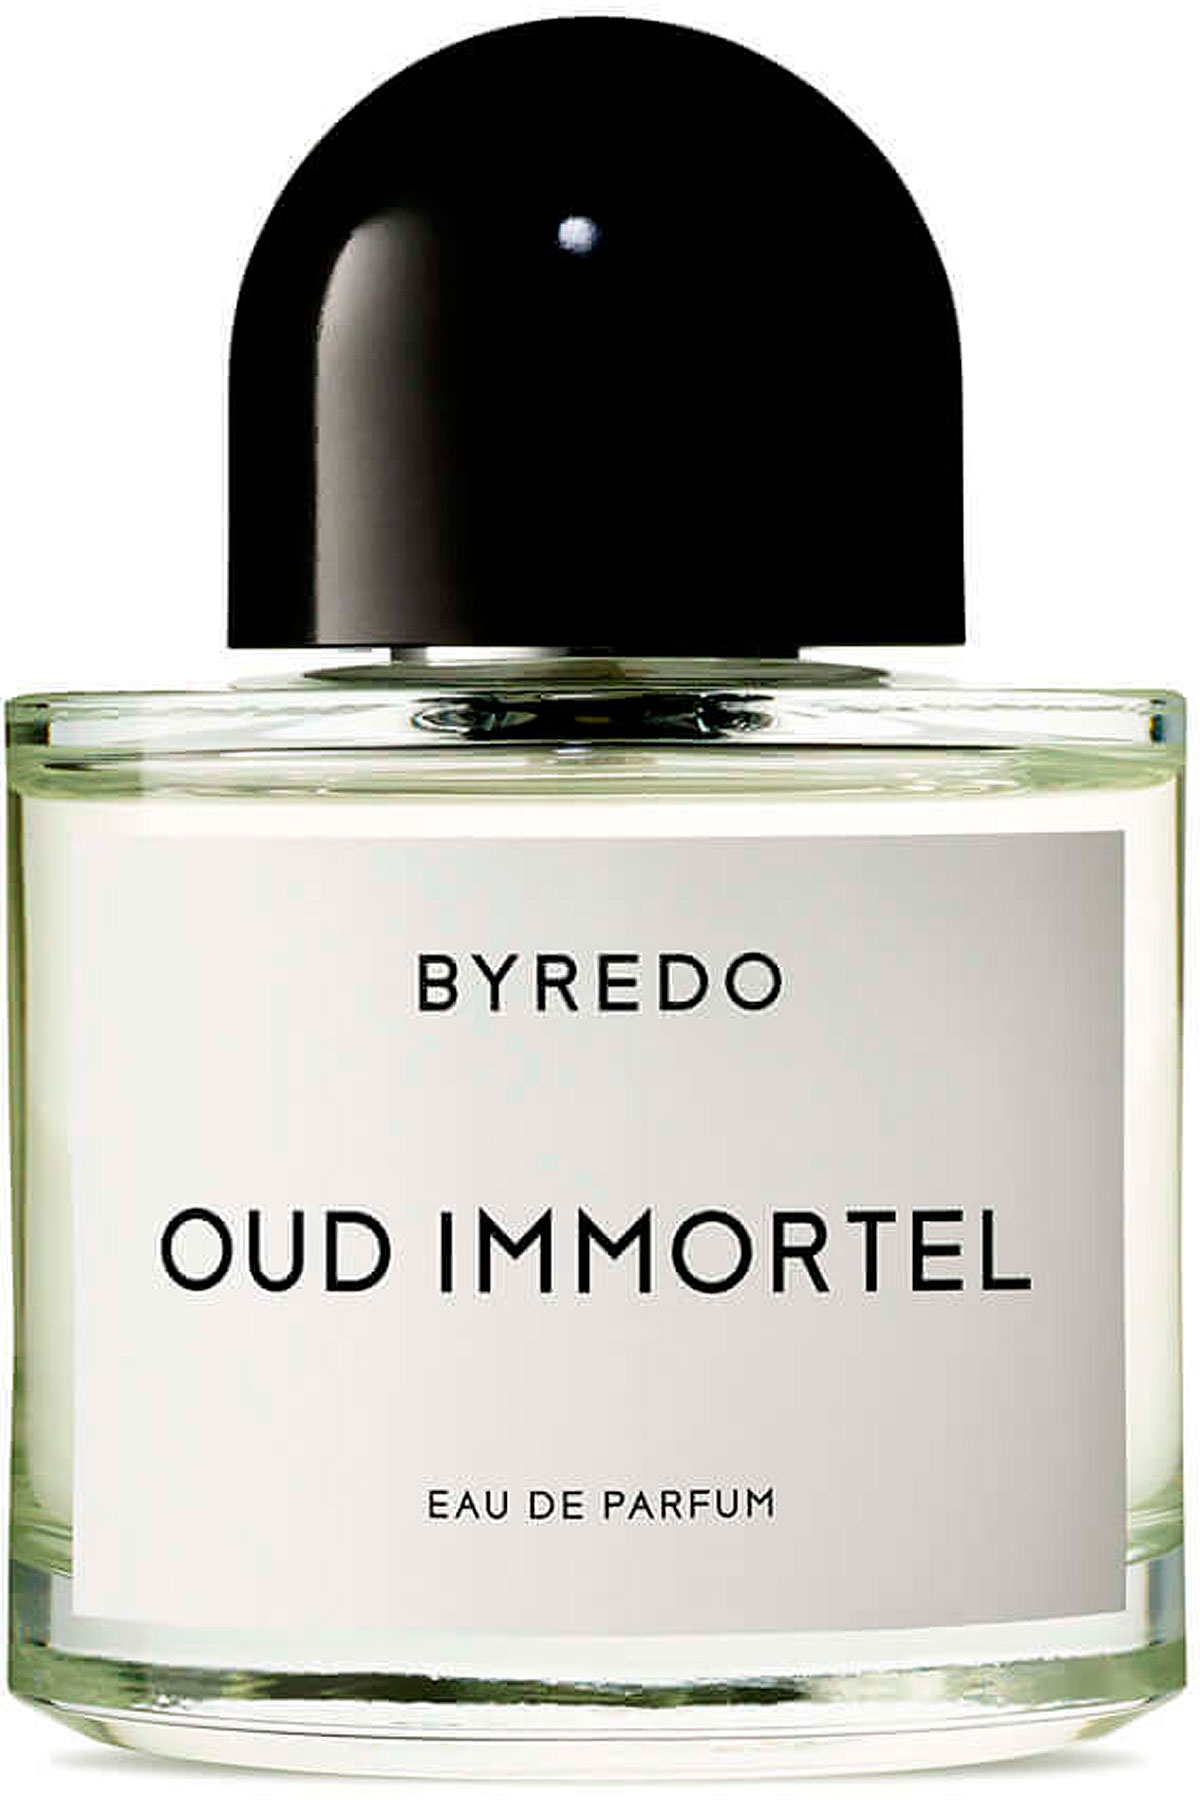 Byredo Fragrances for Men, Oud Immortel - Eau De Parfum - 100 Ml, 2019, 100 ml